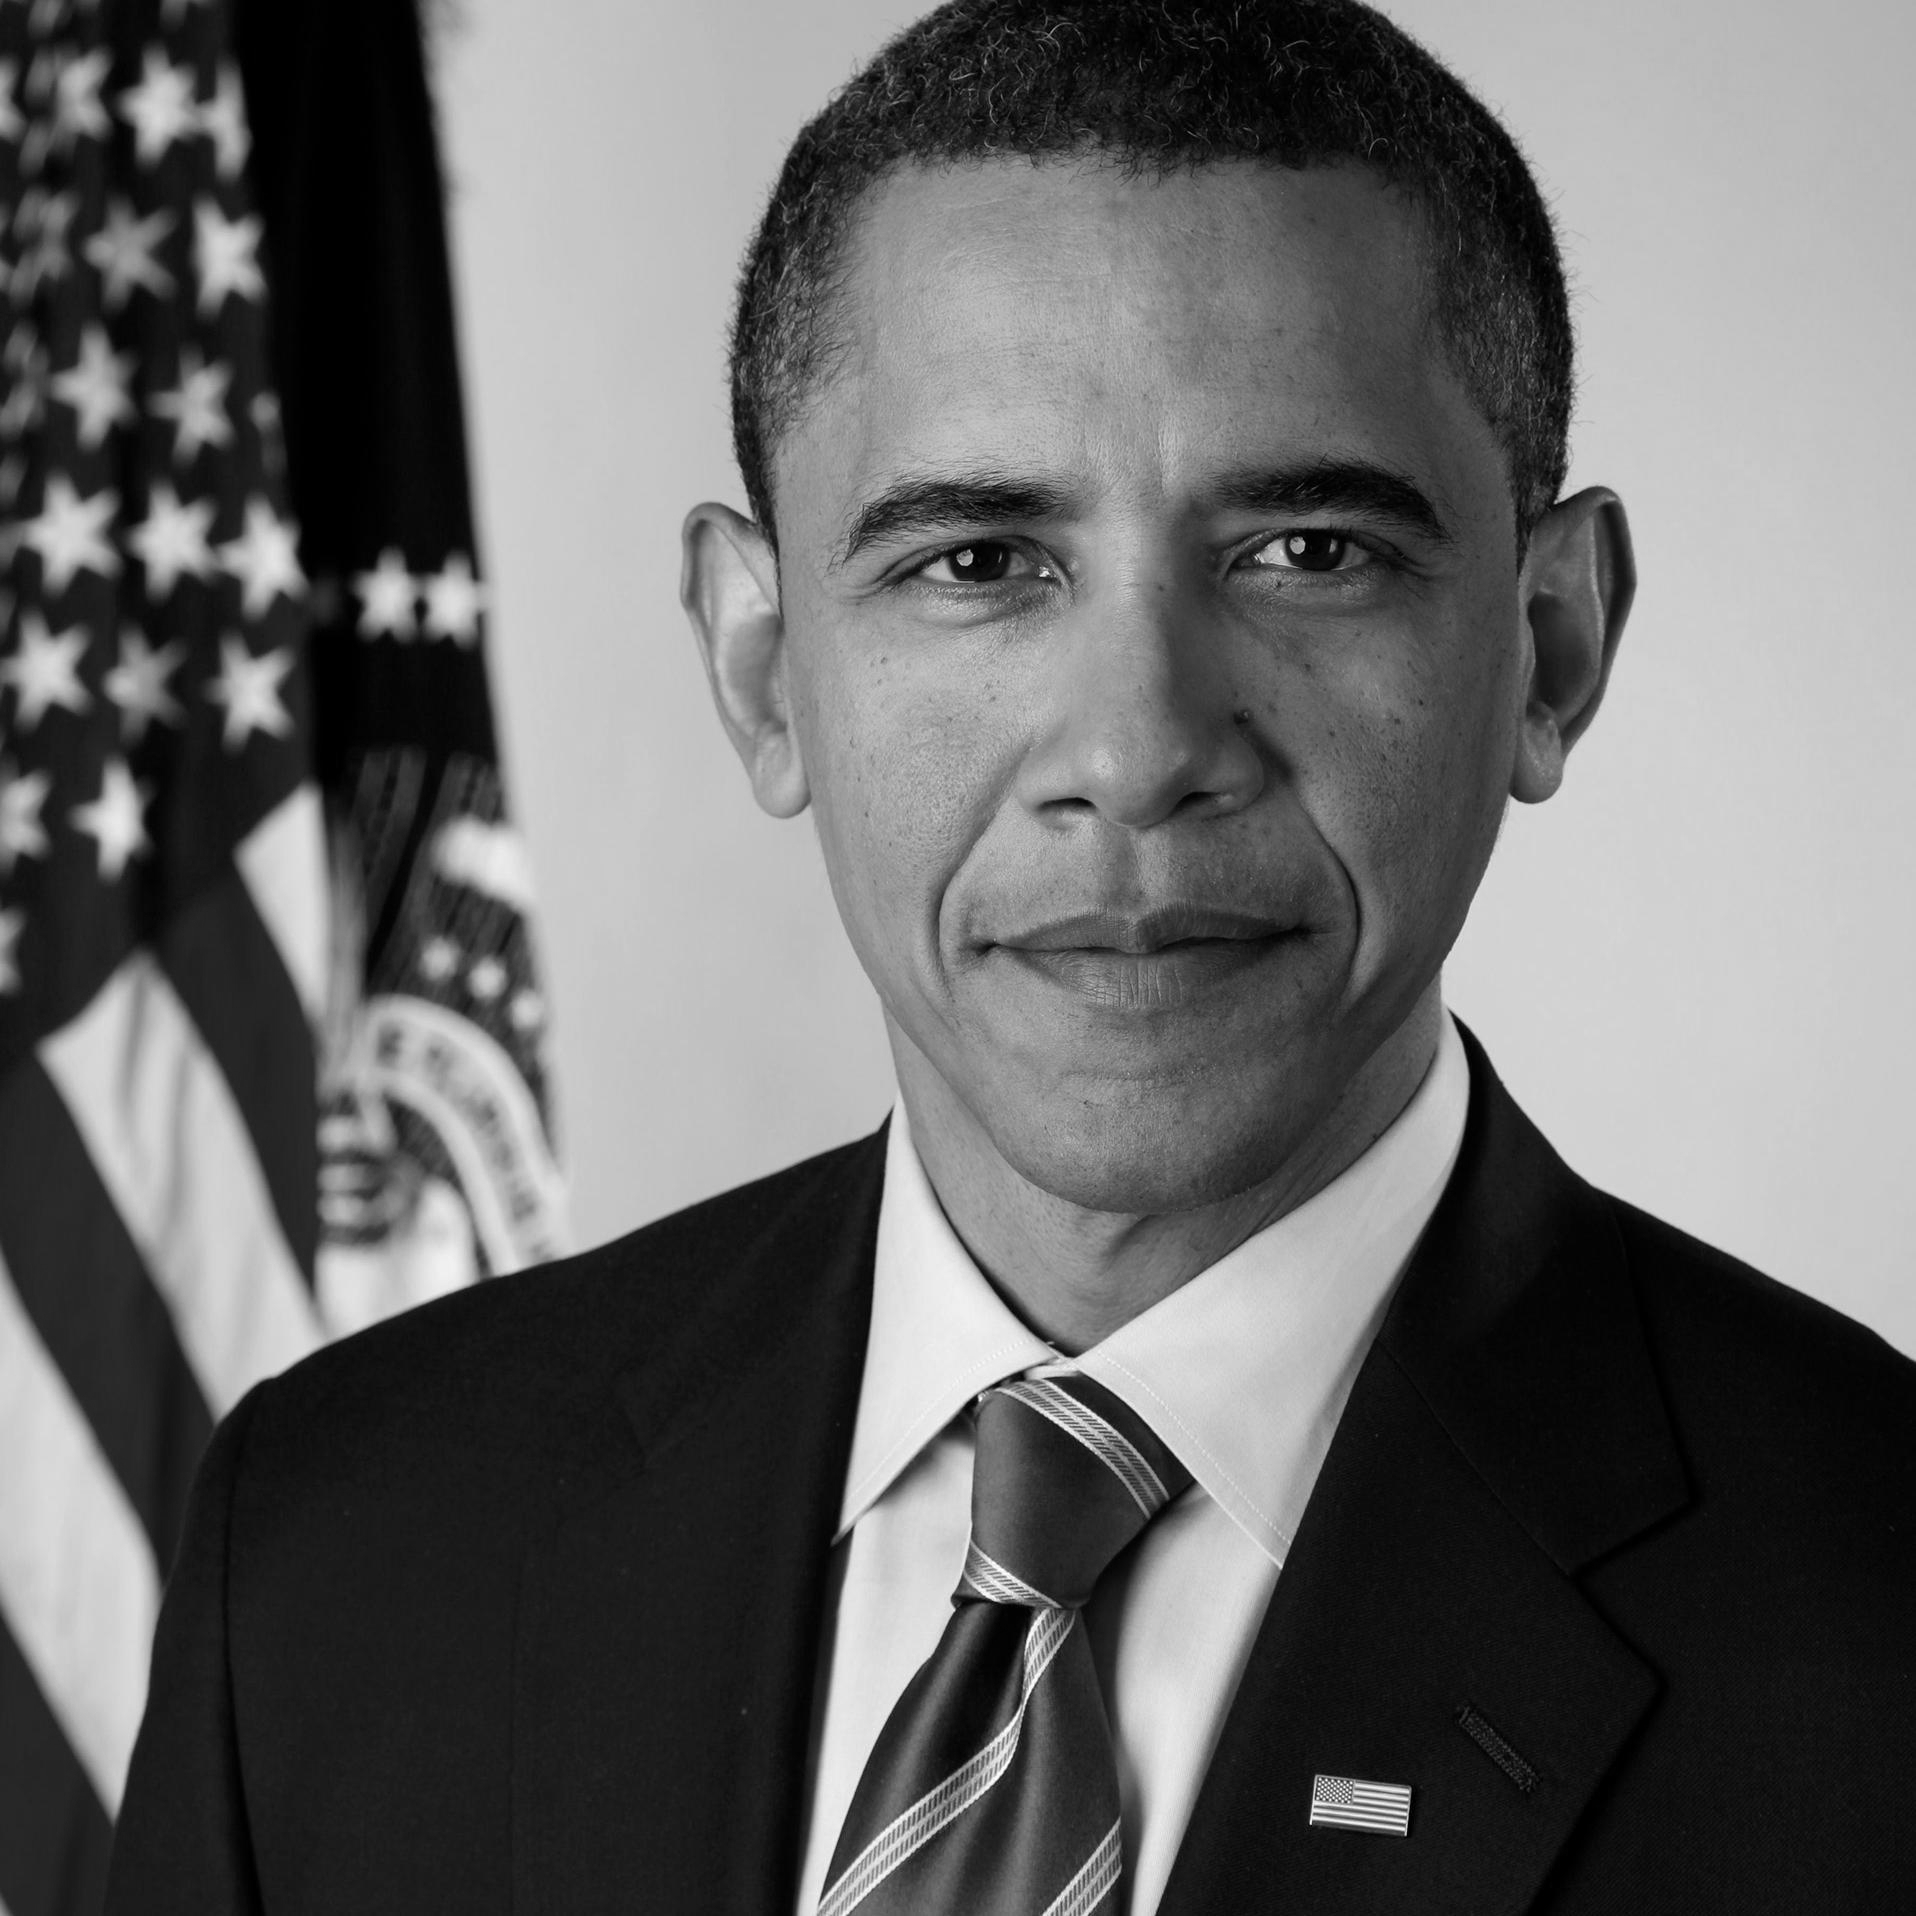 President Barak Obama, Commander In Chief who authorized Operation Neptune Spear. He watched the mission through a live drone feed in the White House with his National Security Team.